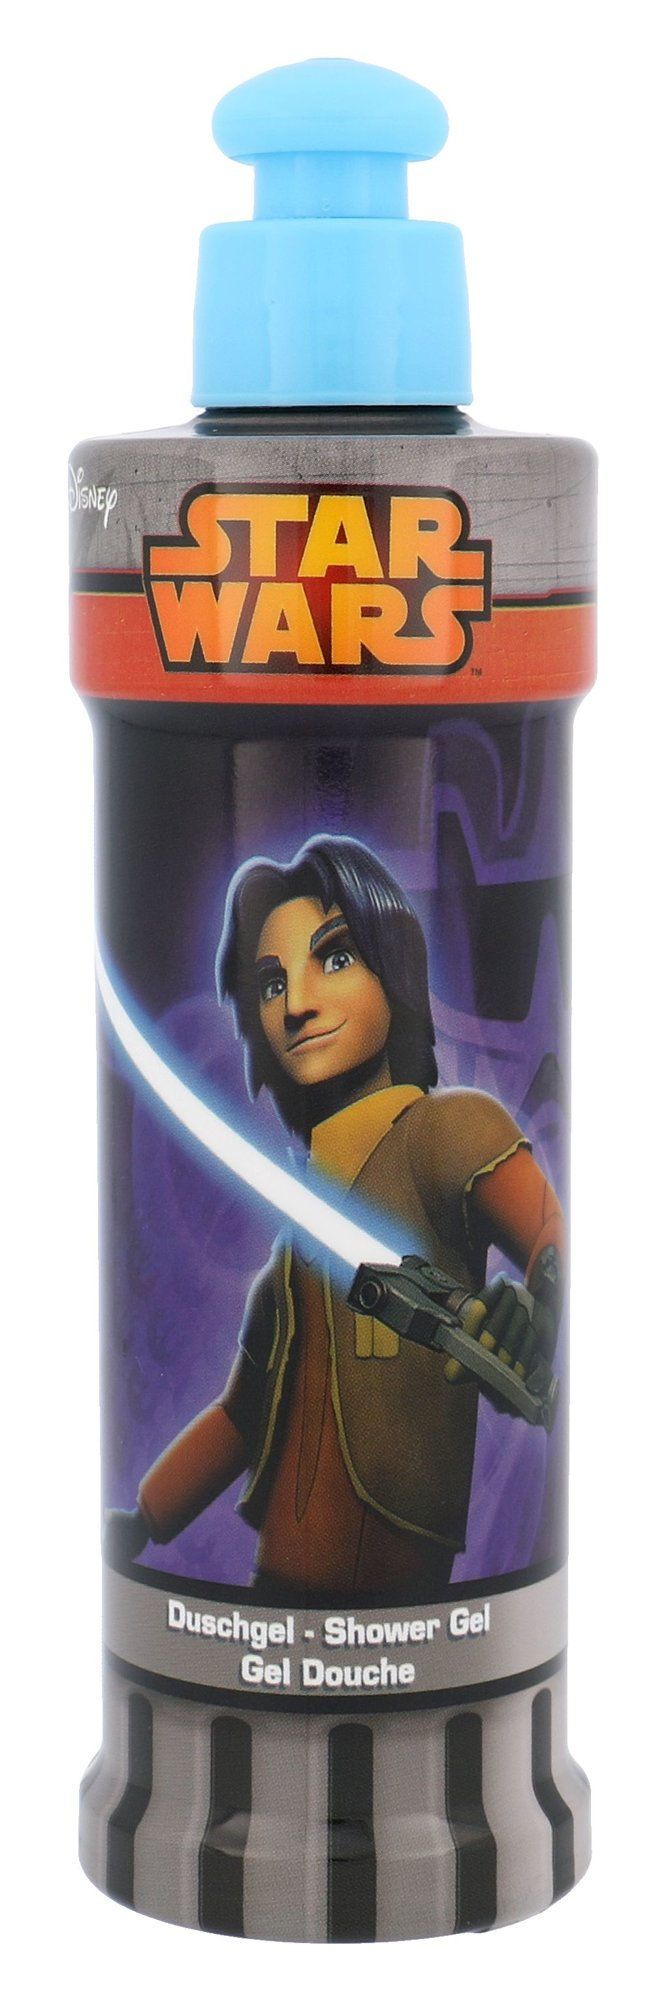 Star Wars Star Wars Ezra Bridger